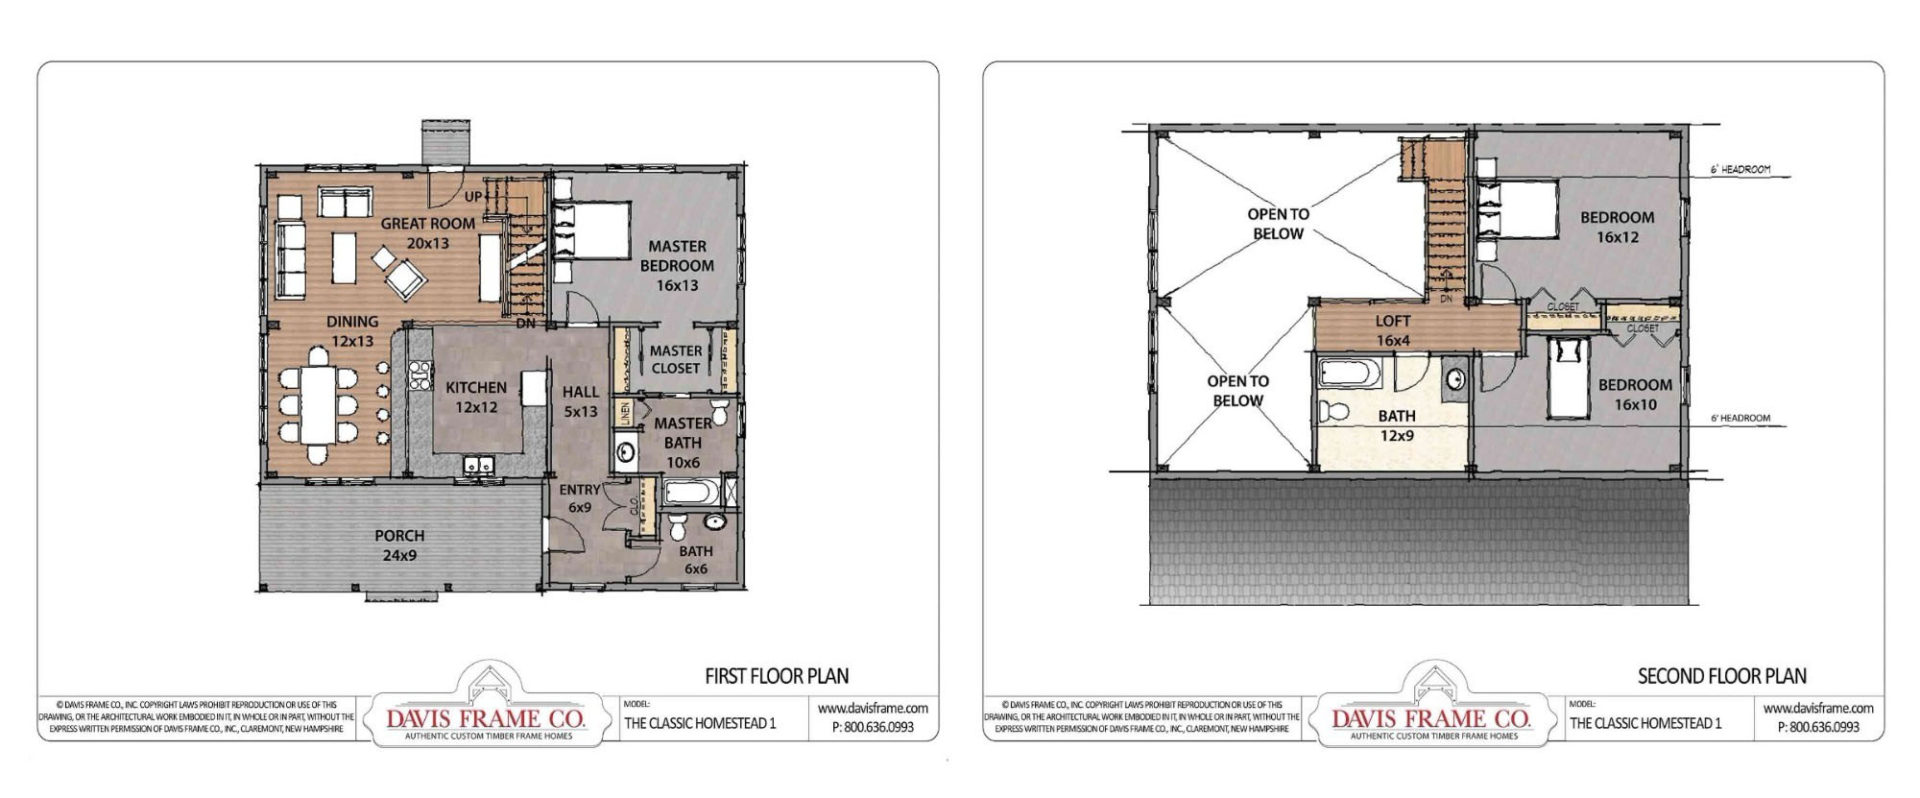 Most Requested Timber Frame Floor Plans - Check Them Out!